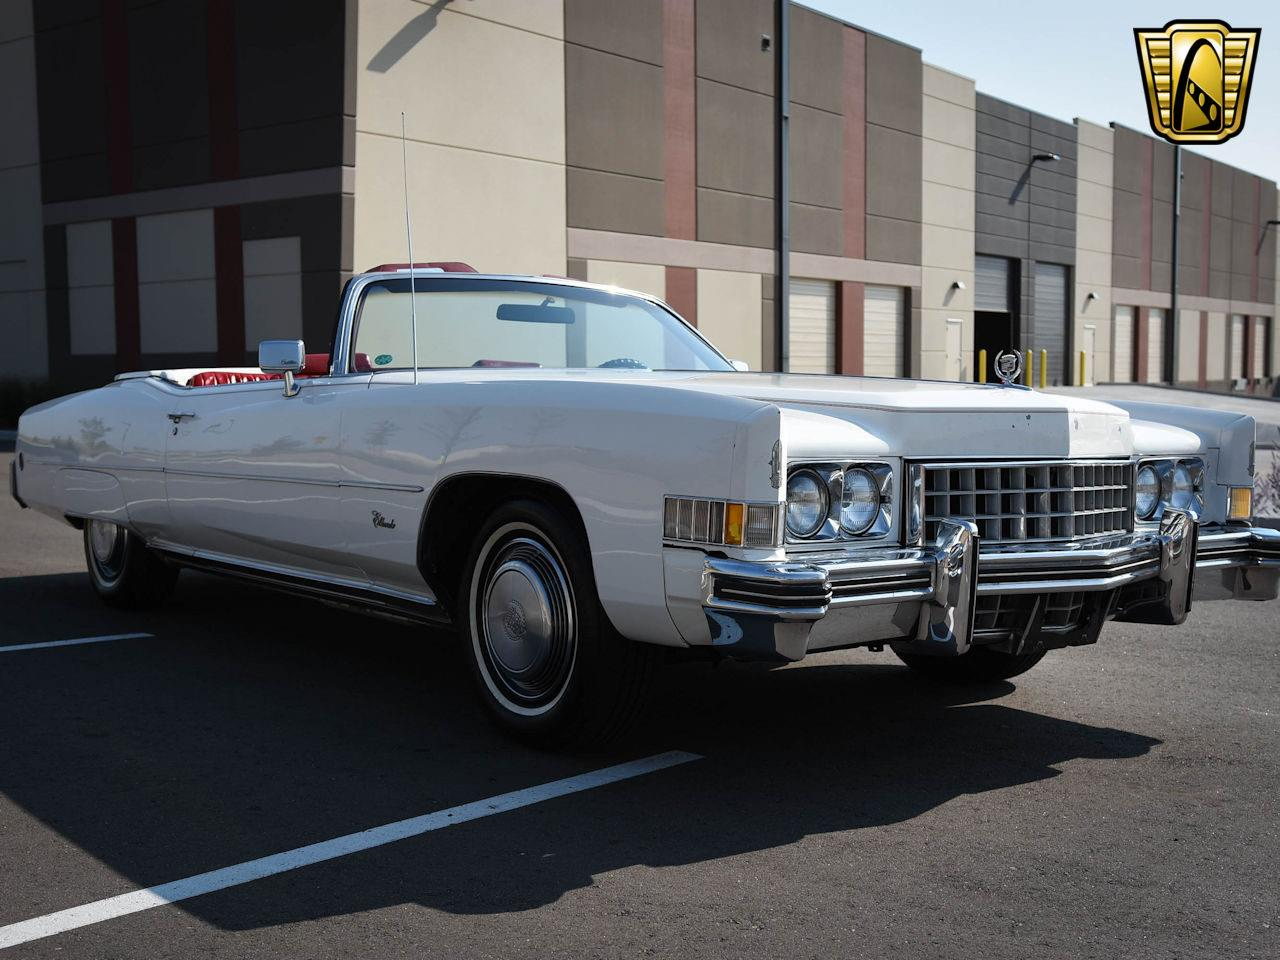 Large Picture of Classic '73 Cadillac Eldorado located in Illinois - $14,595.00 Offered by Gateway Classic Cars - Denver - LT70